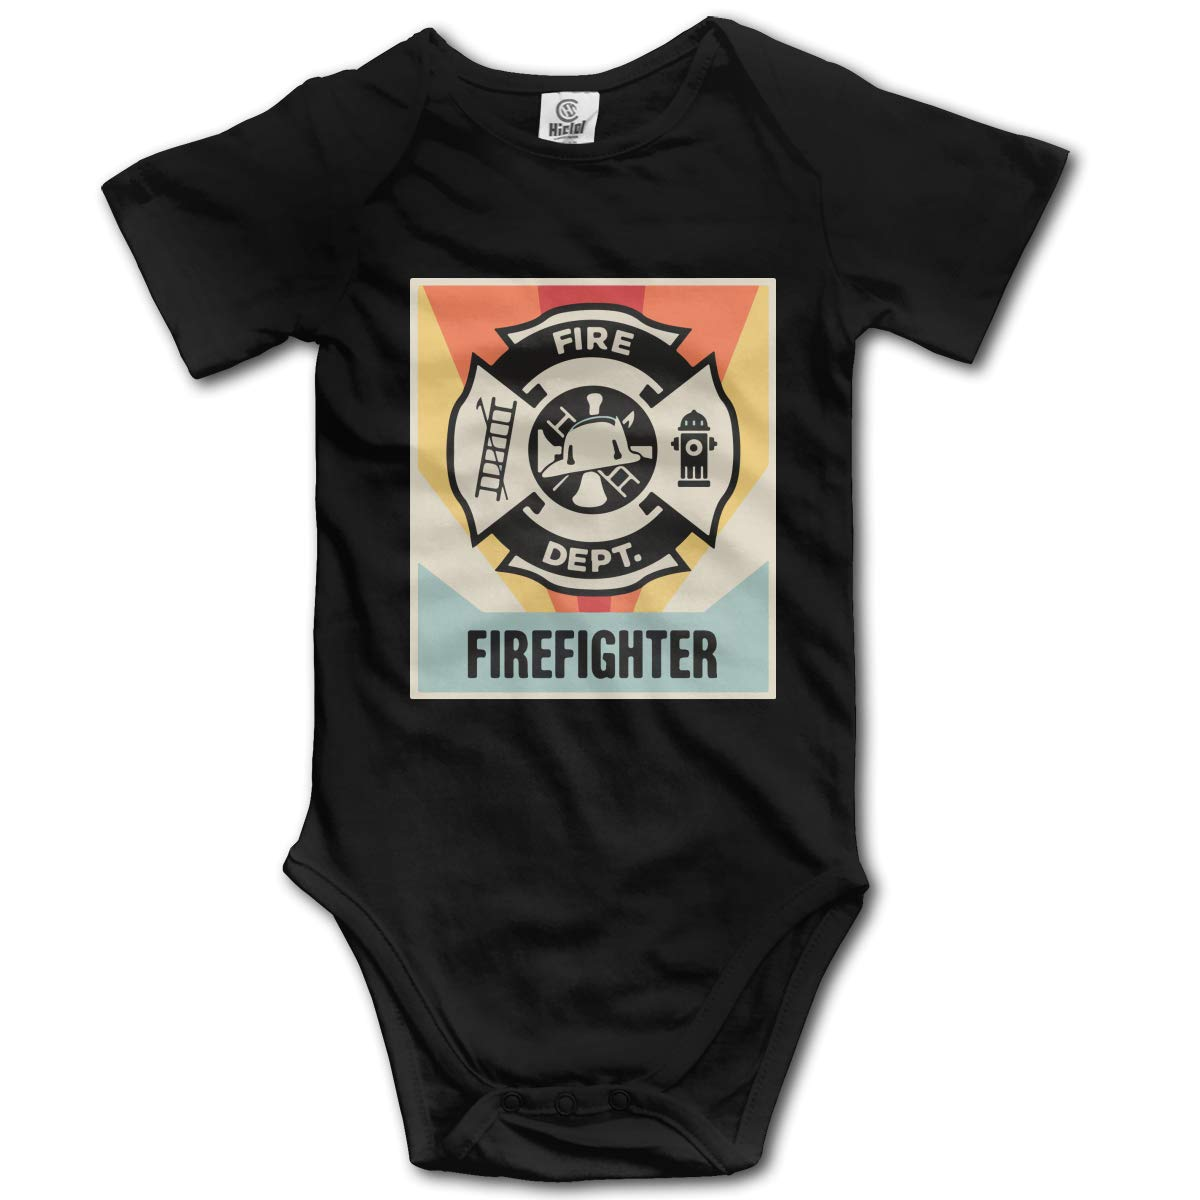 Newborn Vintage Style Firefighter Short Sleeve Climbing Clothes Bodysuits Jumpsuit Suit 6-24 Months